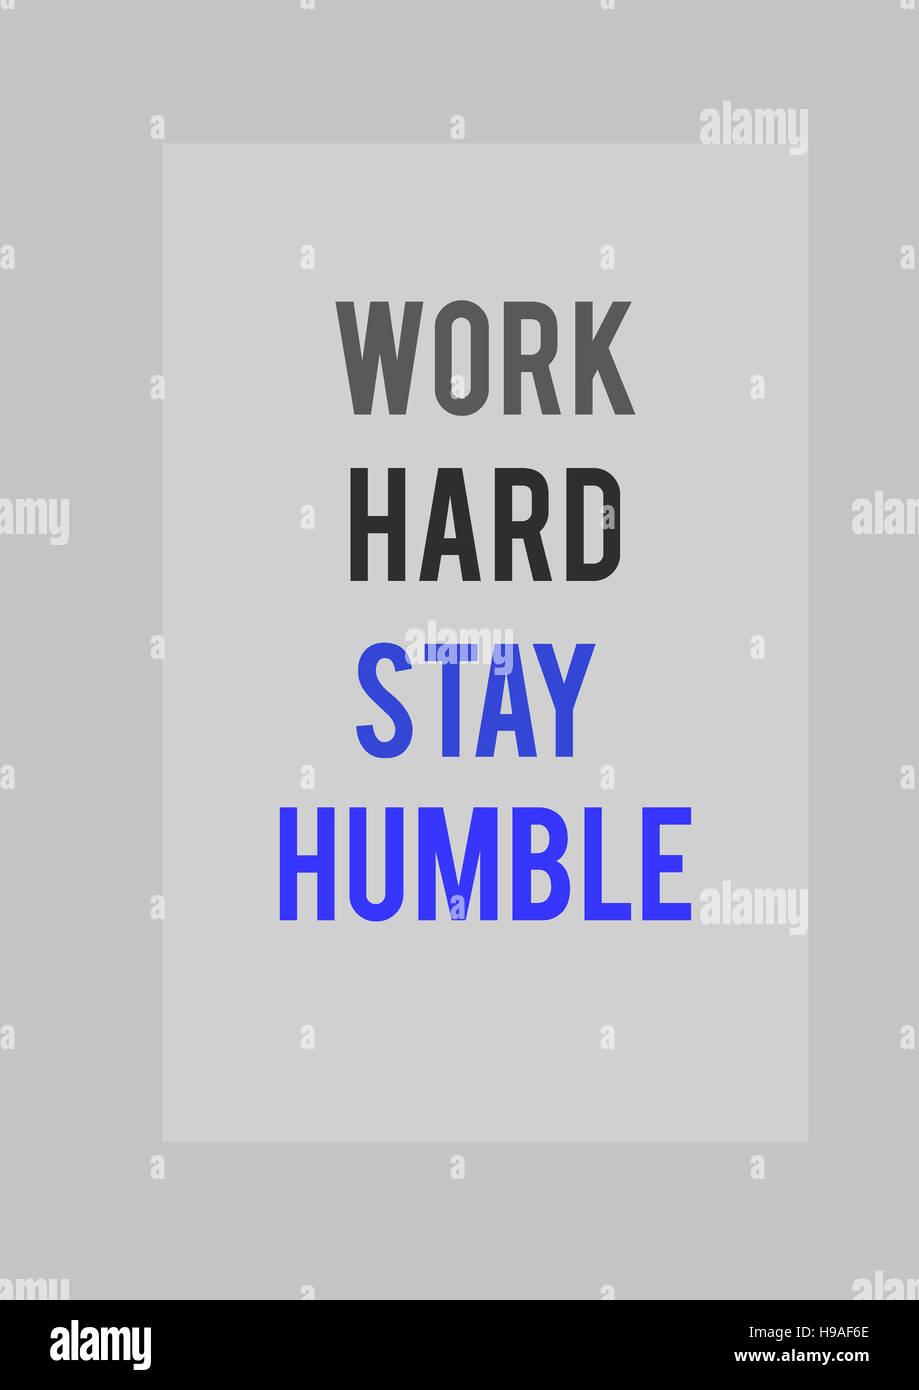 Travailler dur rester humble, fonds, textures, motivation, poster, citations, illustration Photo Stock